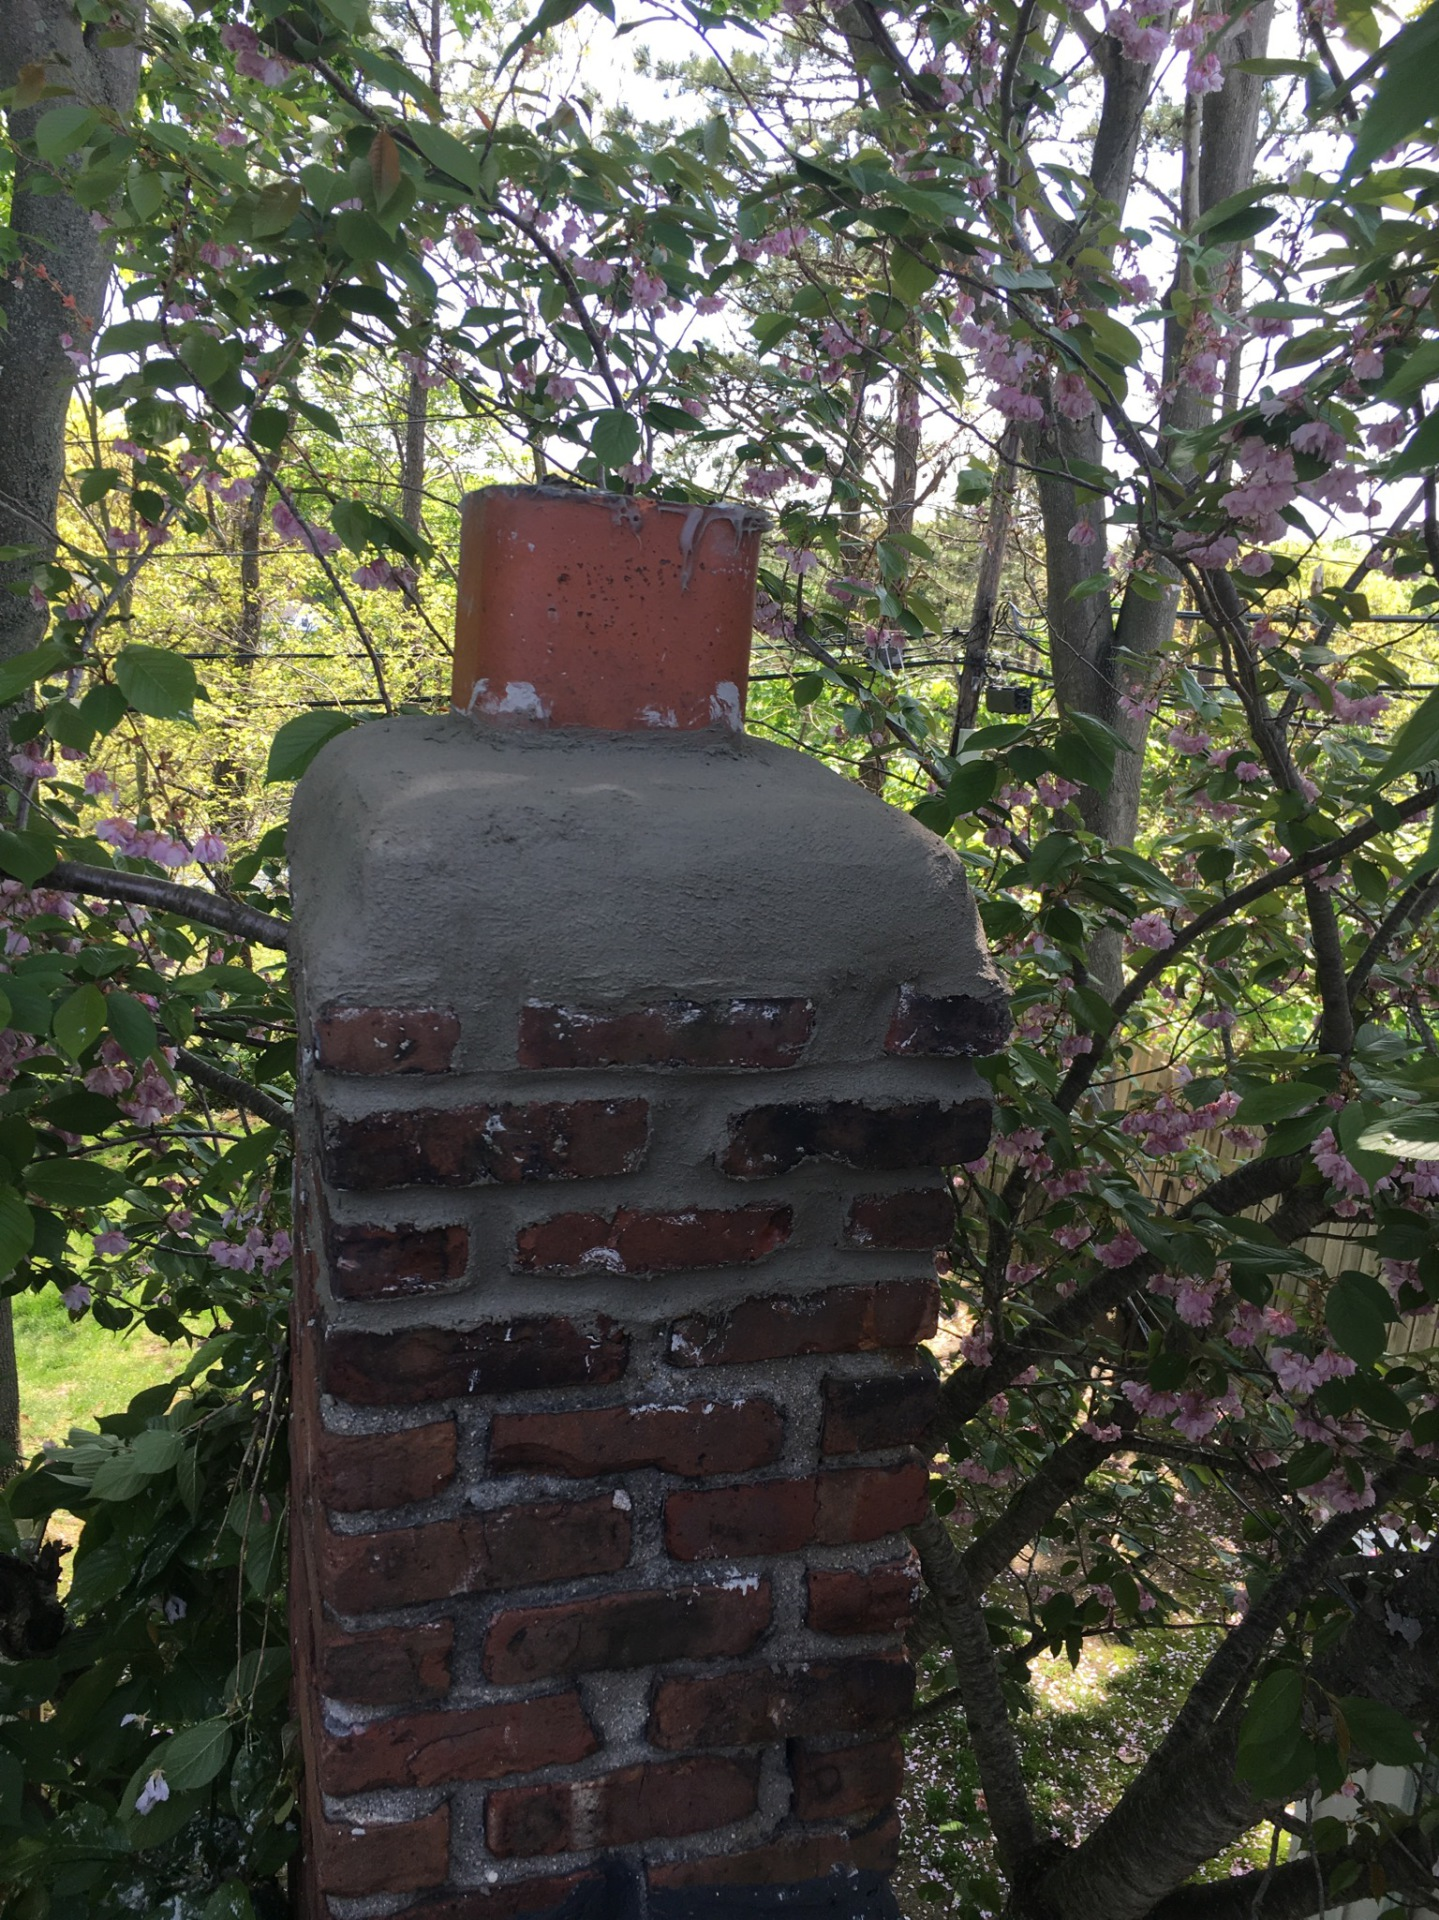 After crown pointing side 2